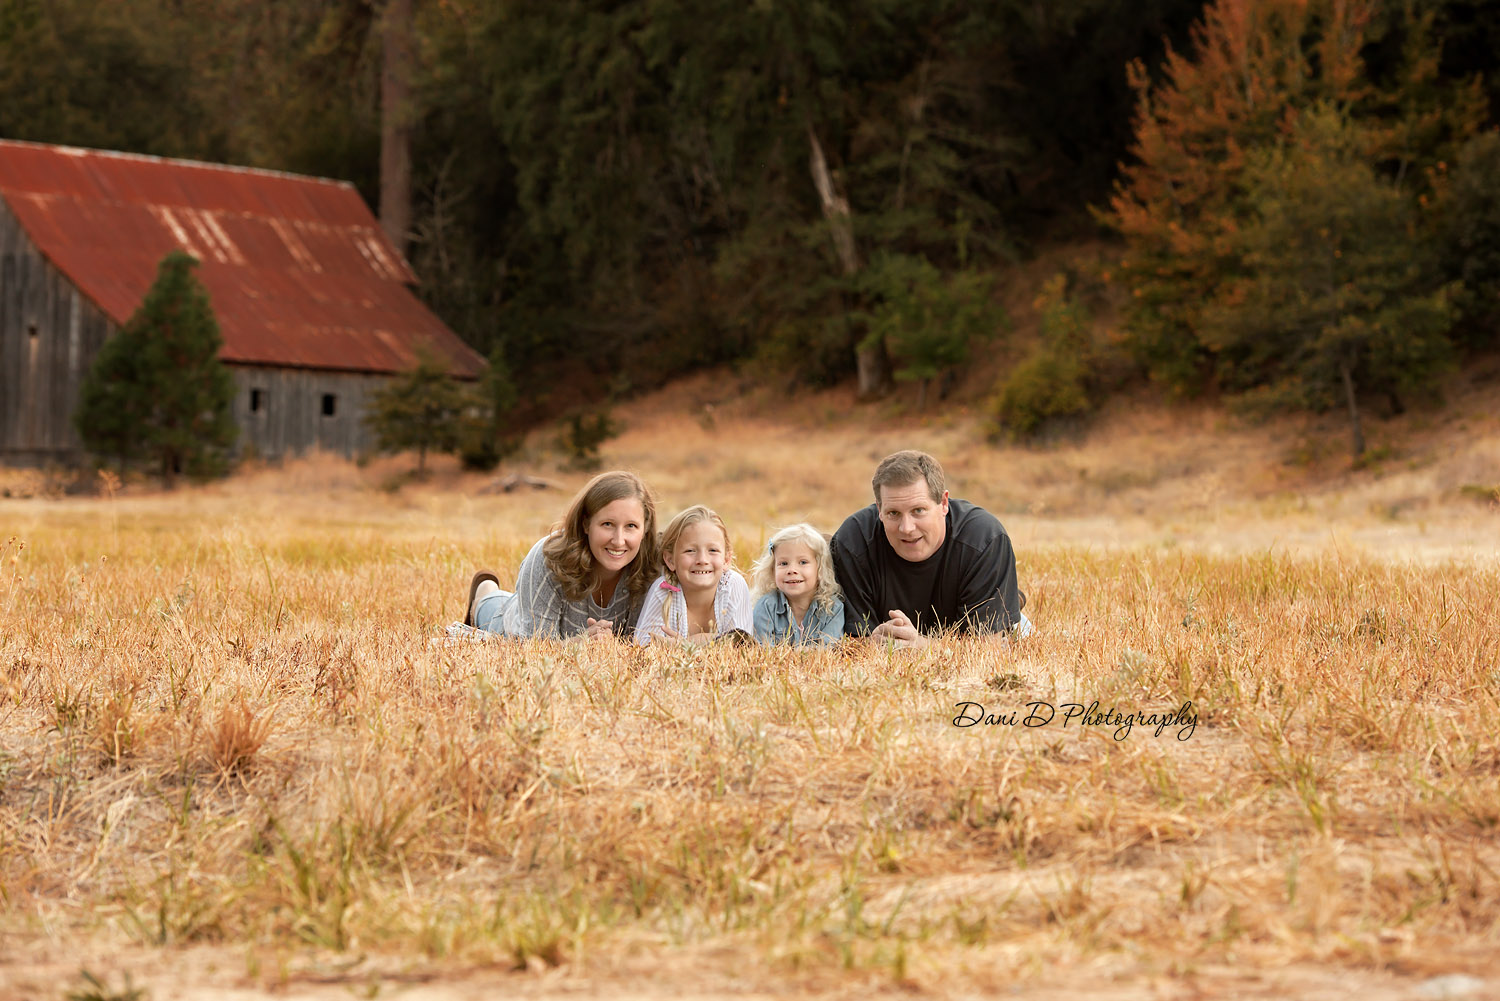 Family in field with barn - Redding CA photographer - Dani D Photography